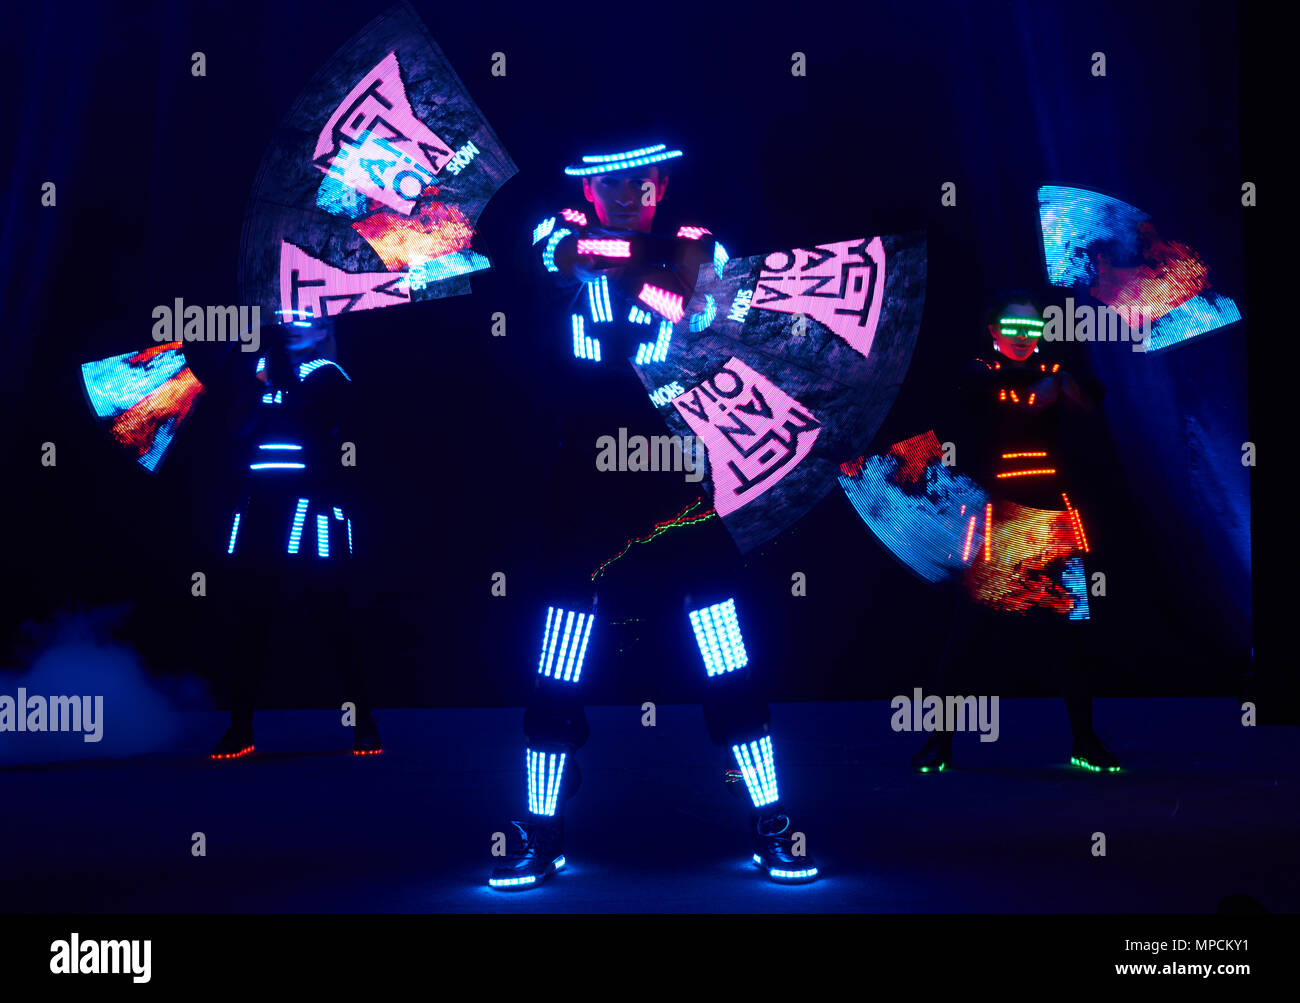 In Suits Led Laser LampVery Show PerformanceDancers With PXTOkZiu